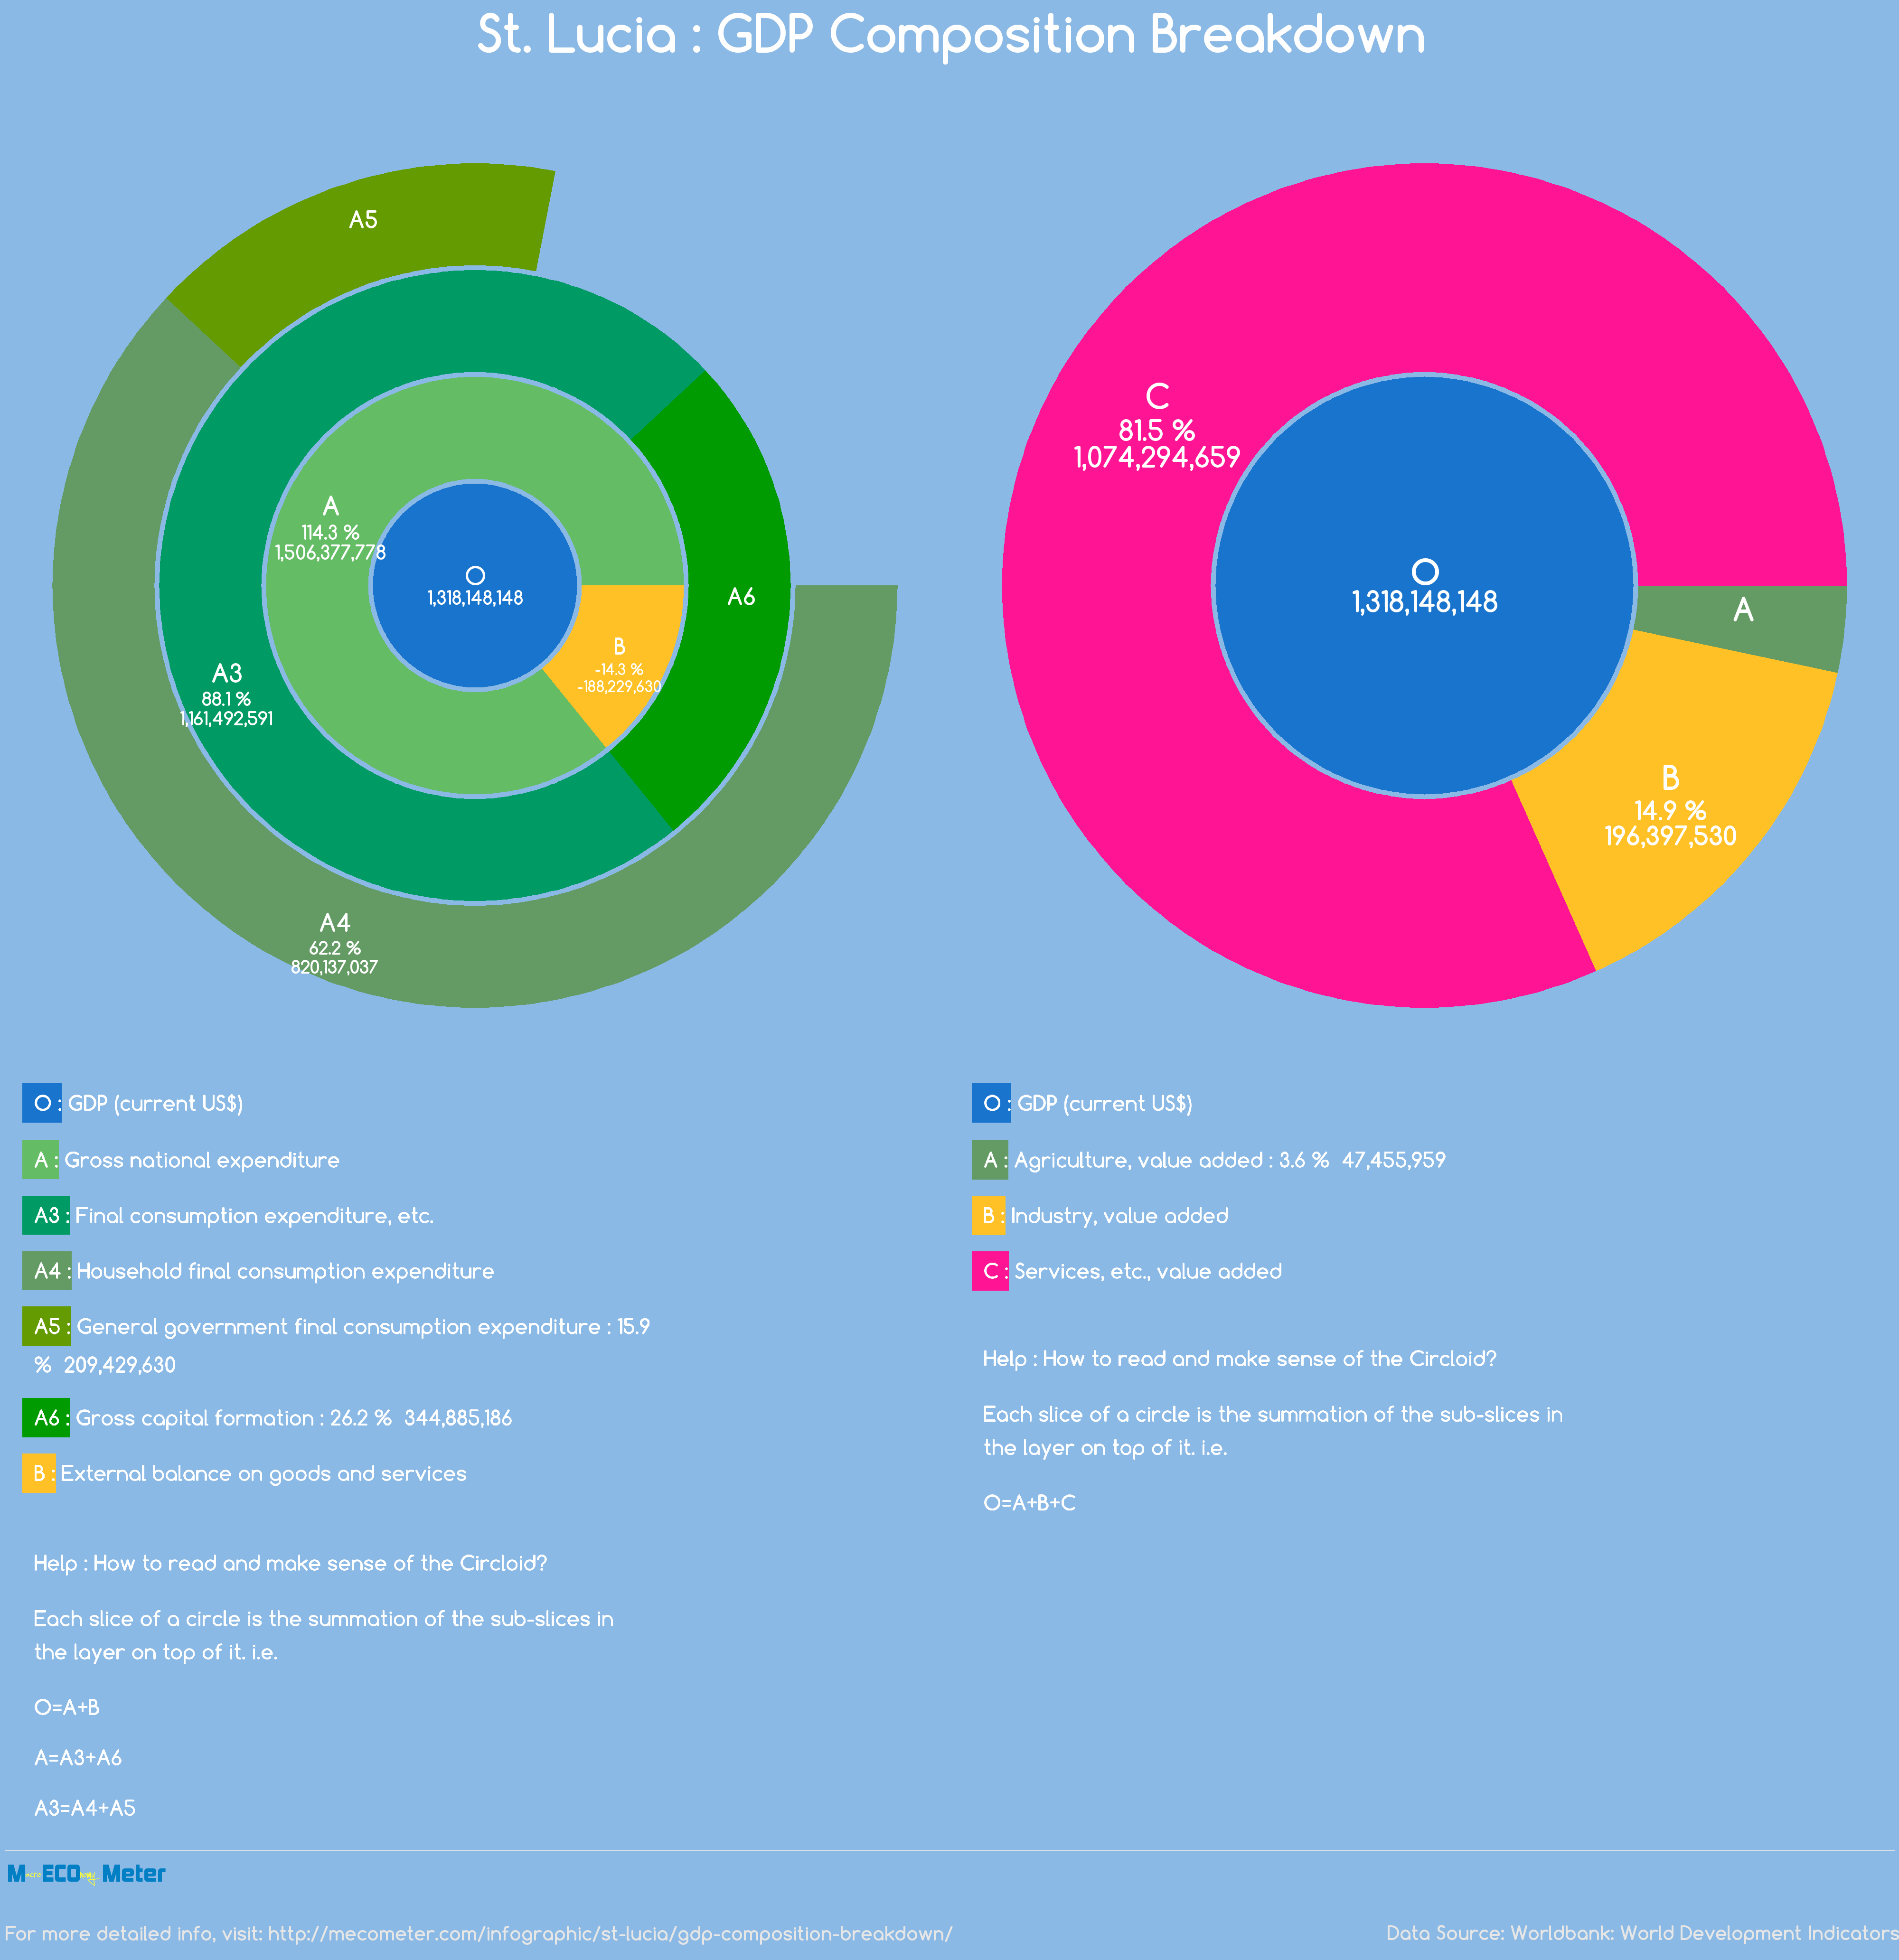 St. Lucia : GDP Composition Breakdown